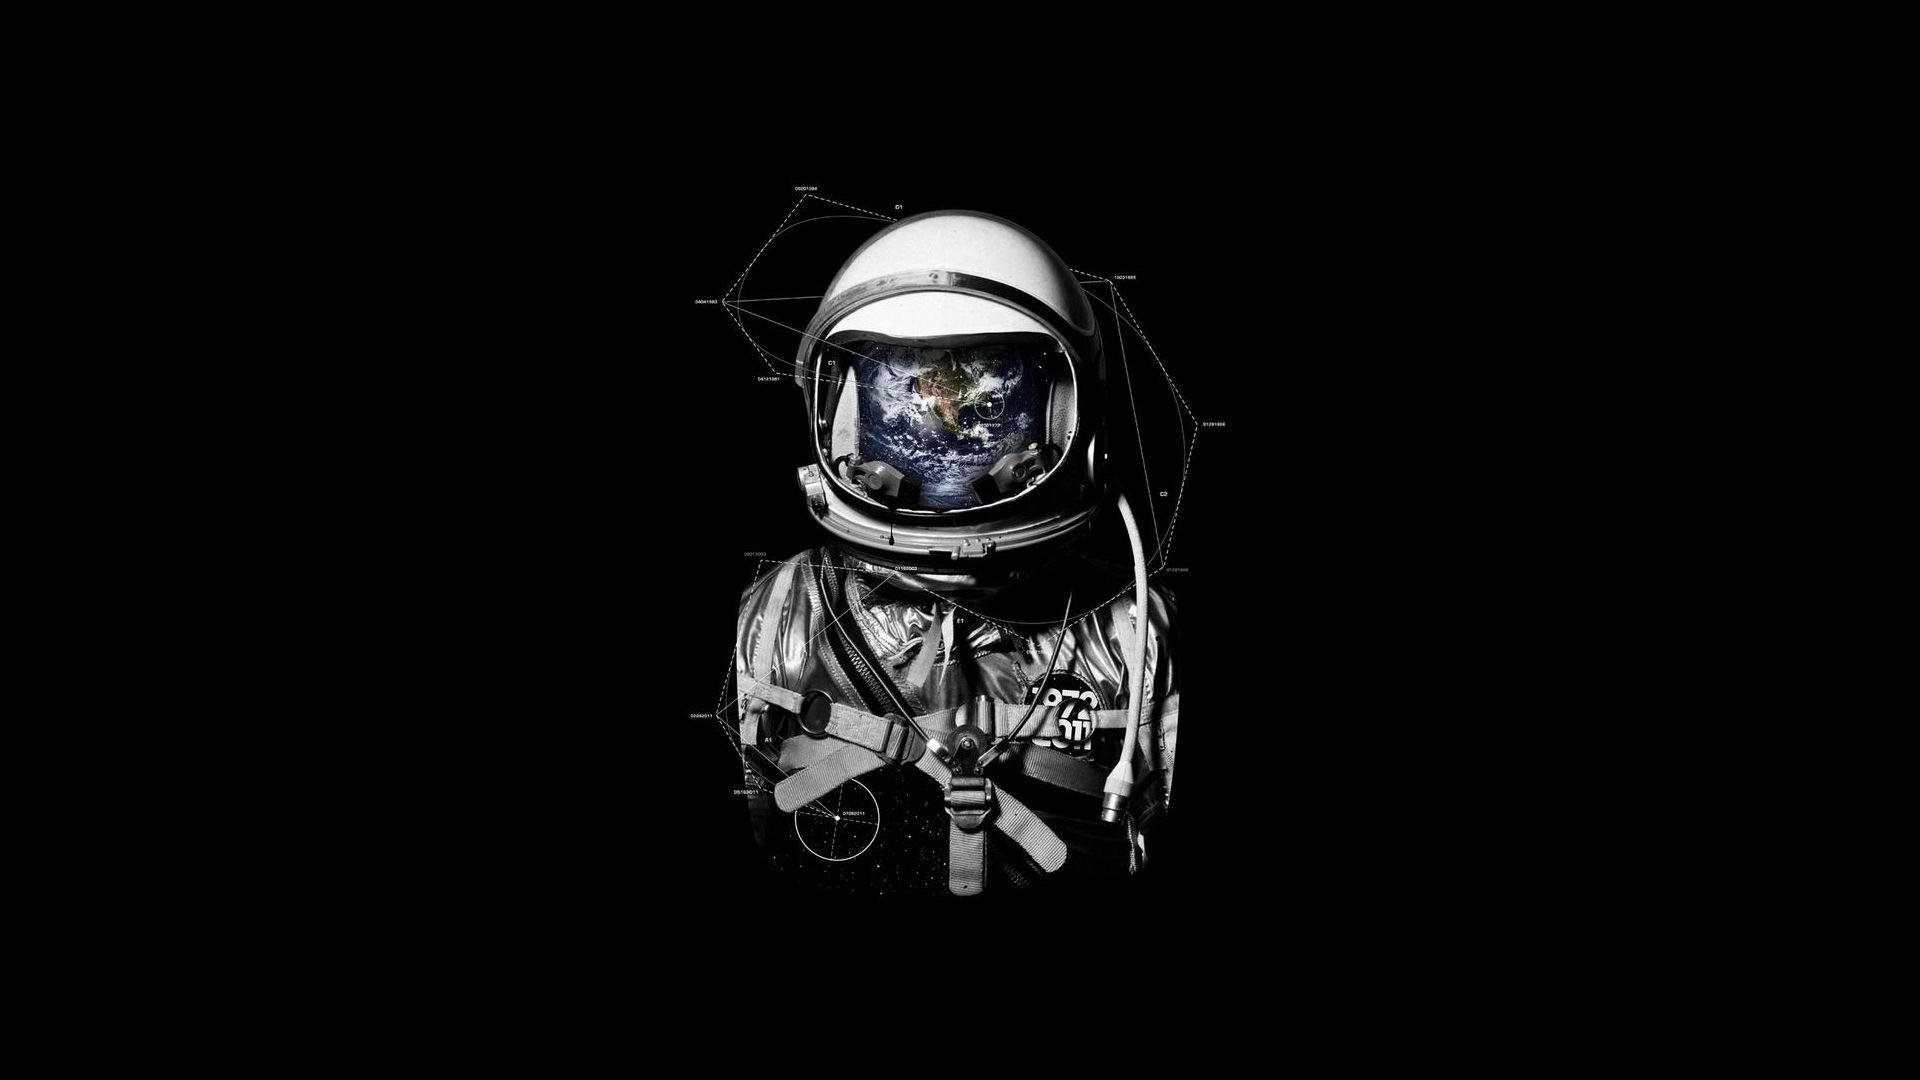 Astronaut Wallpapers - Wallpaper Cave